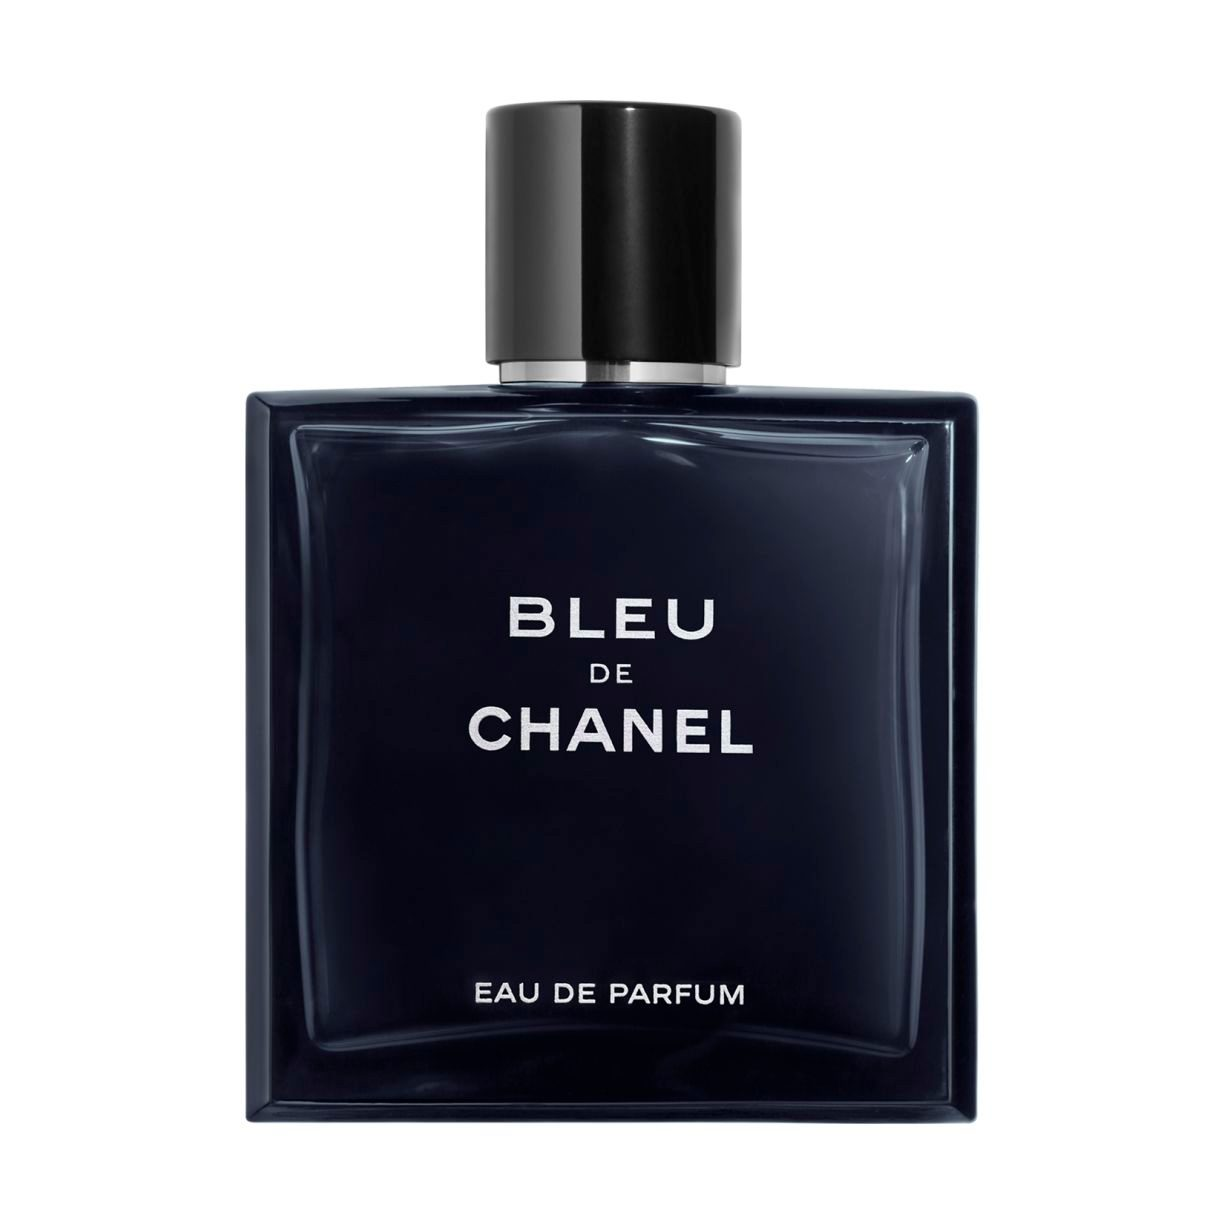 BLEU DE CHANEL EAU DE PARFUM SPRAY 100ml